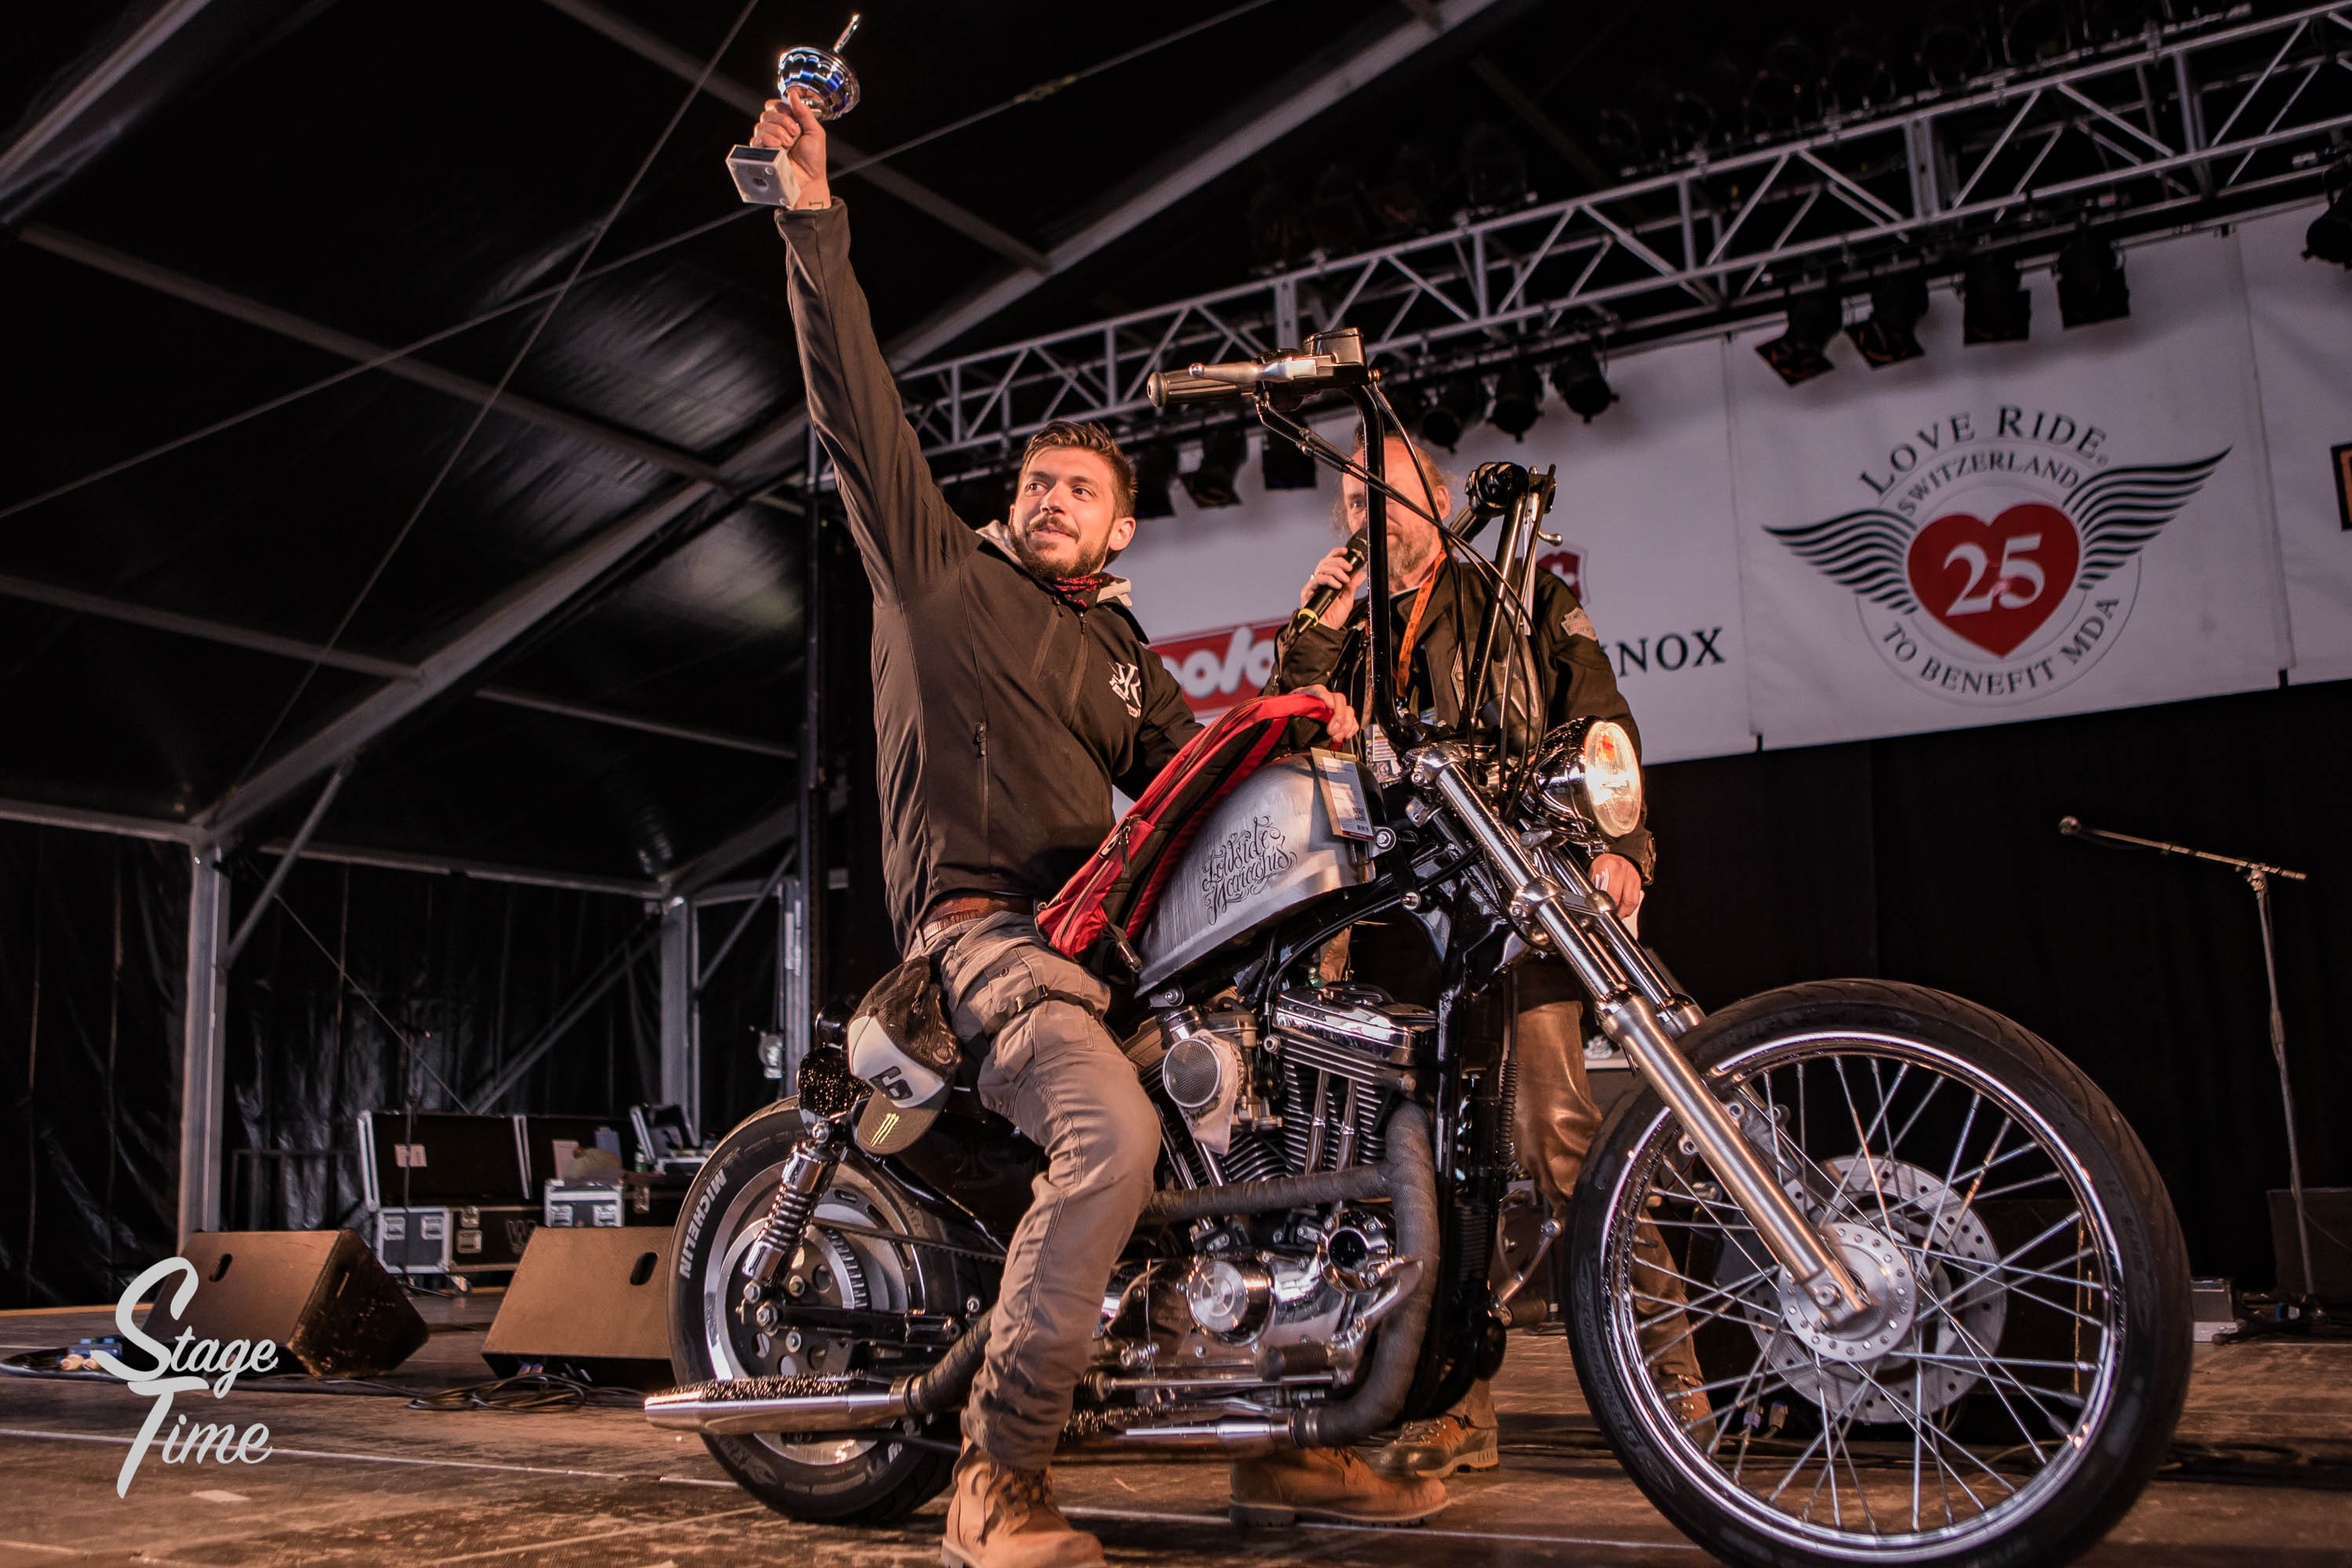 Love_Ride_25_(Foto-Christoph_Gurtner-_Stagetime.ch)-72